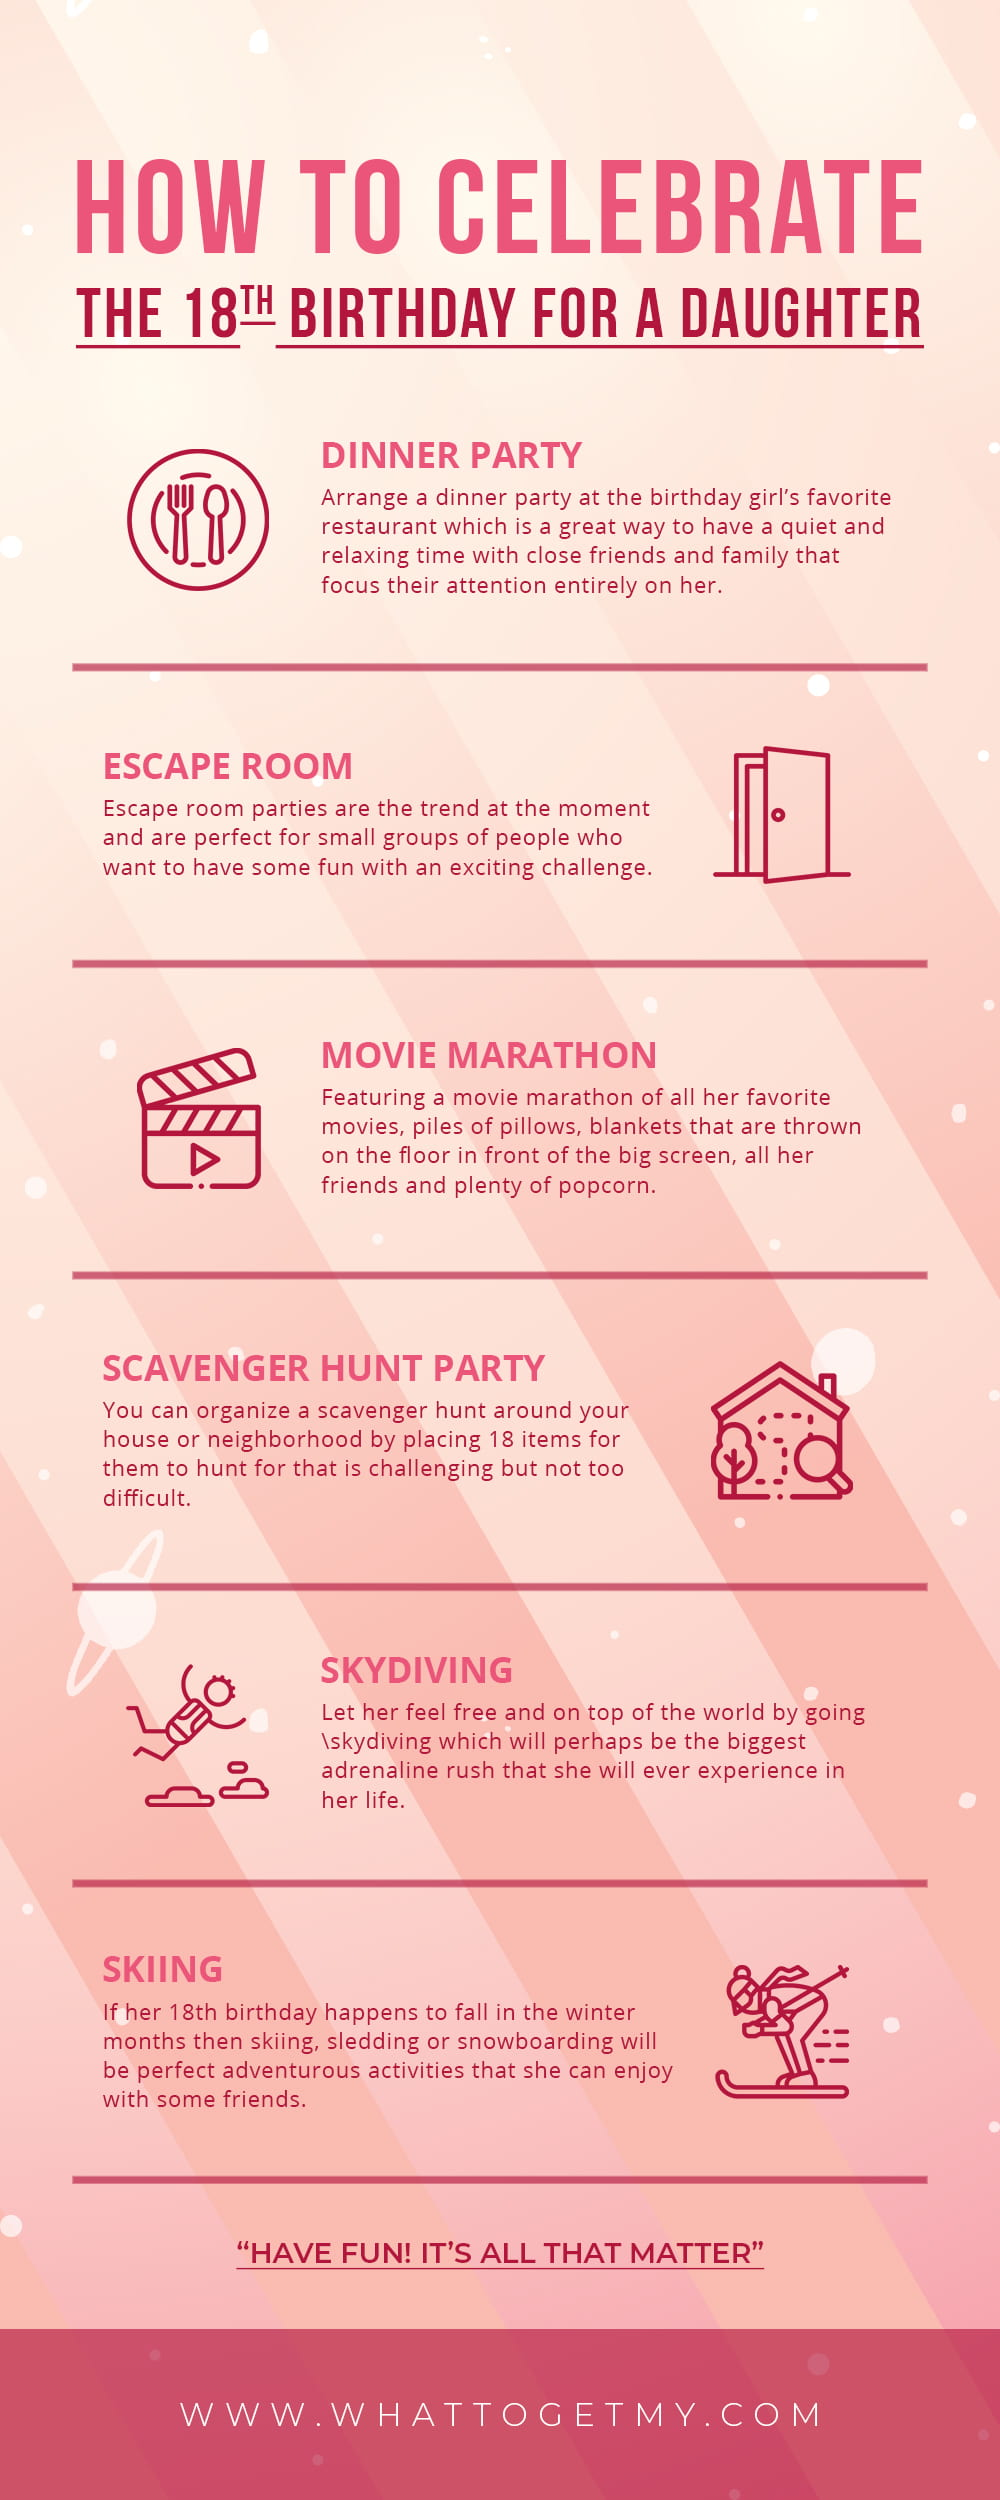 Infographic How to Celebrate the 18th Birthday for a Daughter